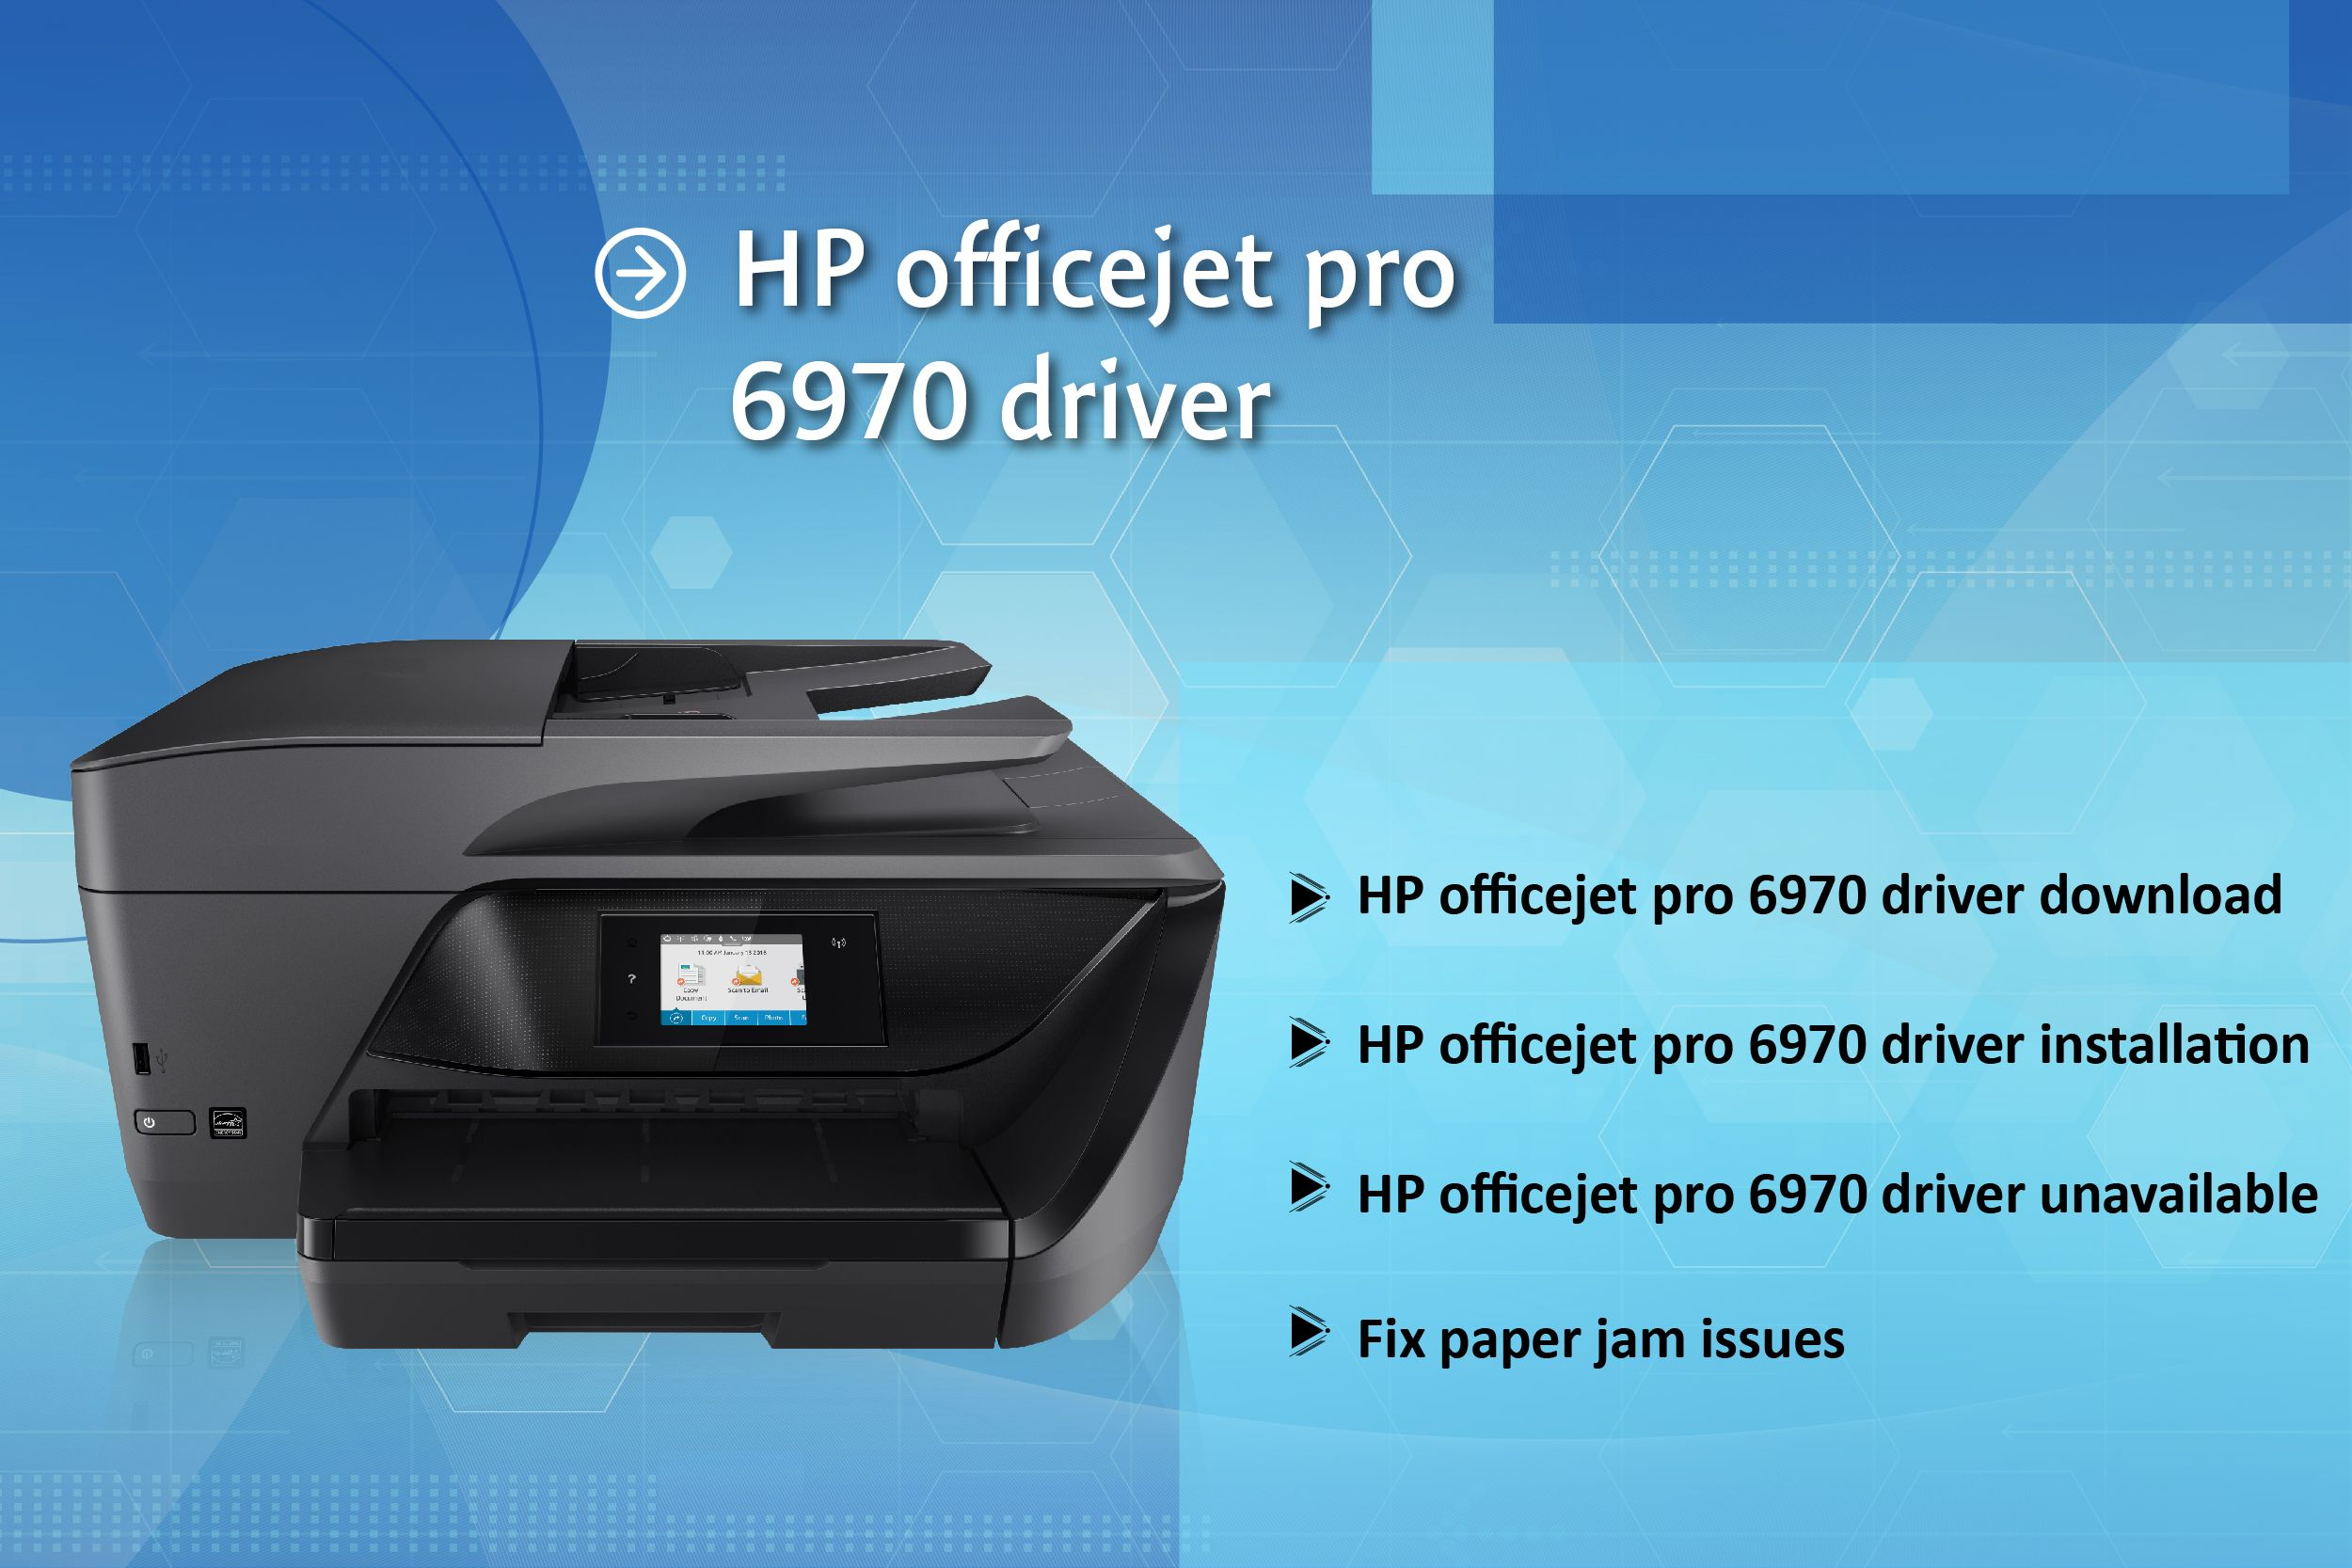 Complete Guidance For Hp Officejet Pro 6970 Printer Driver